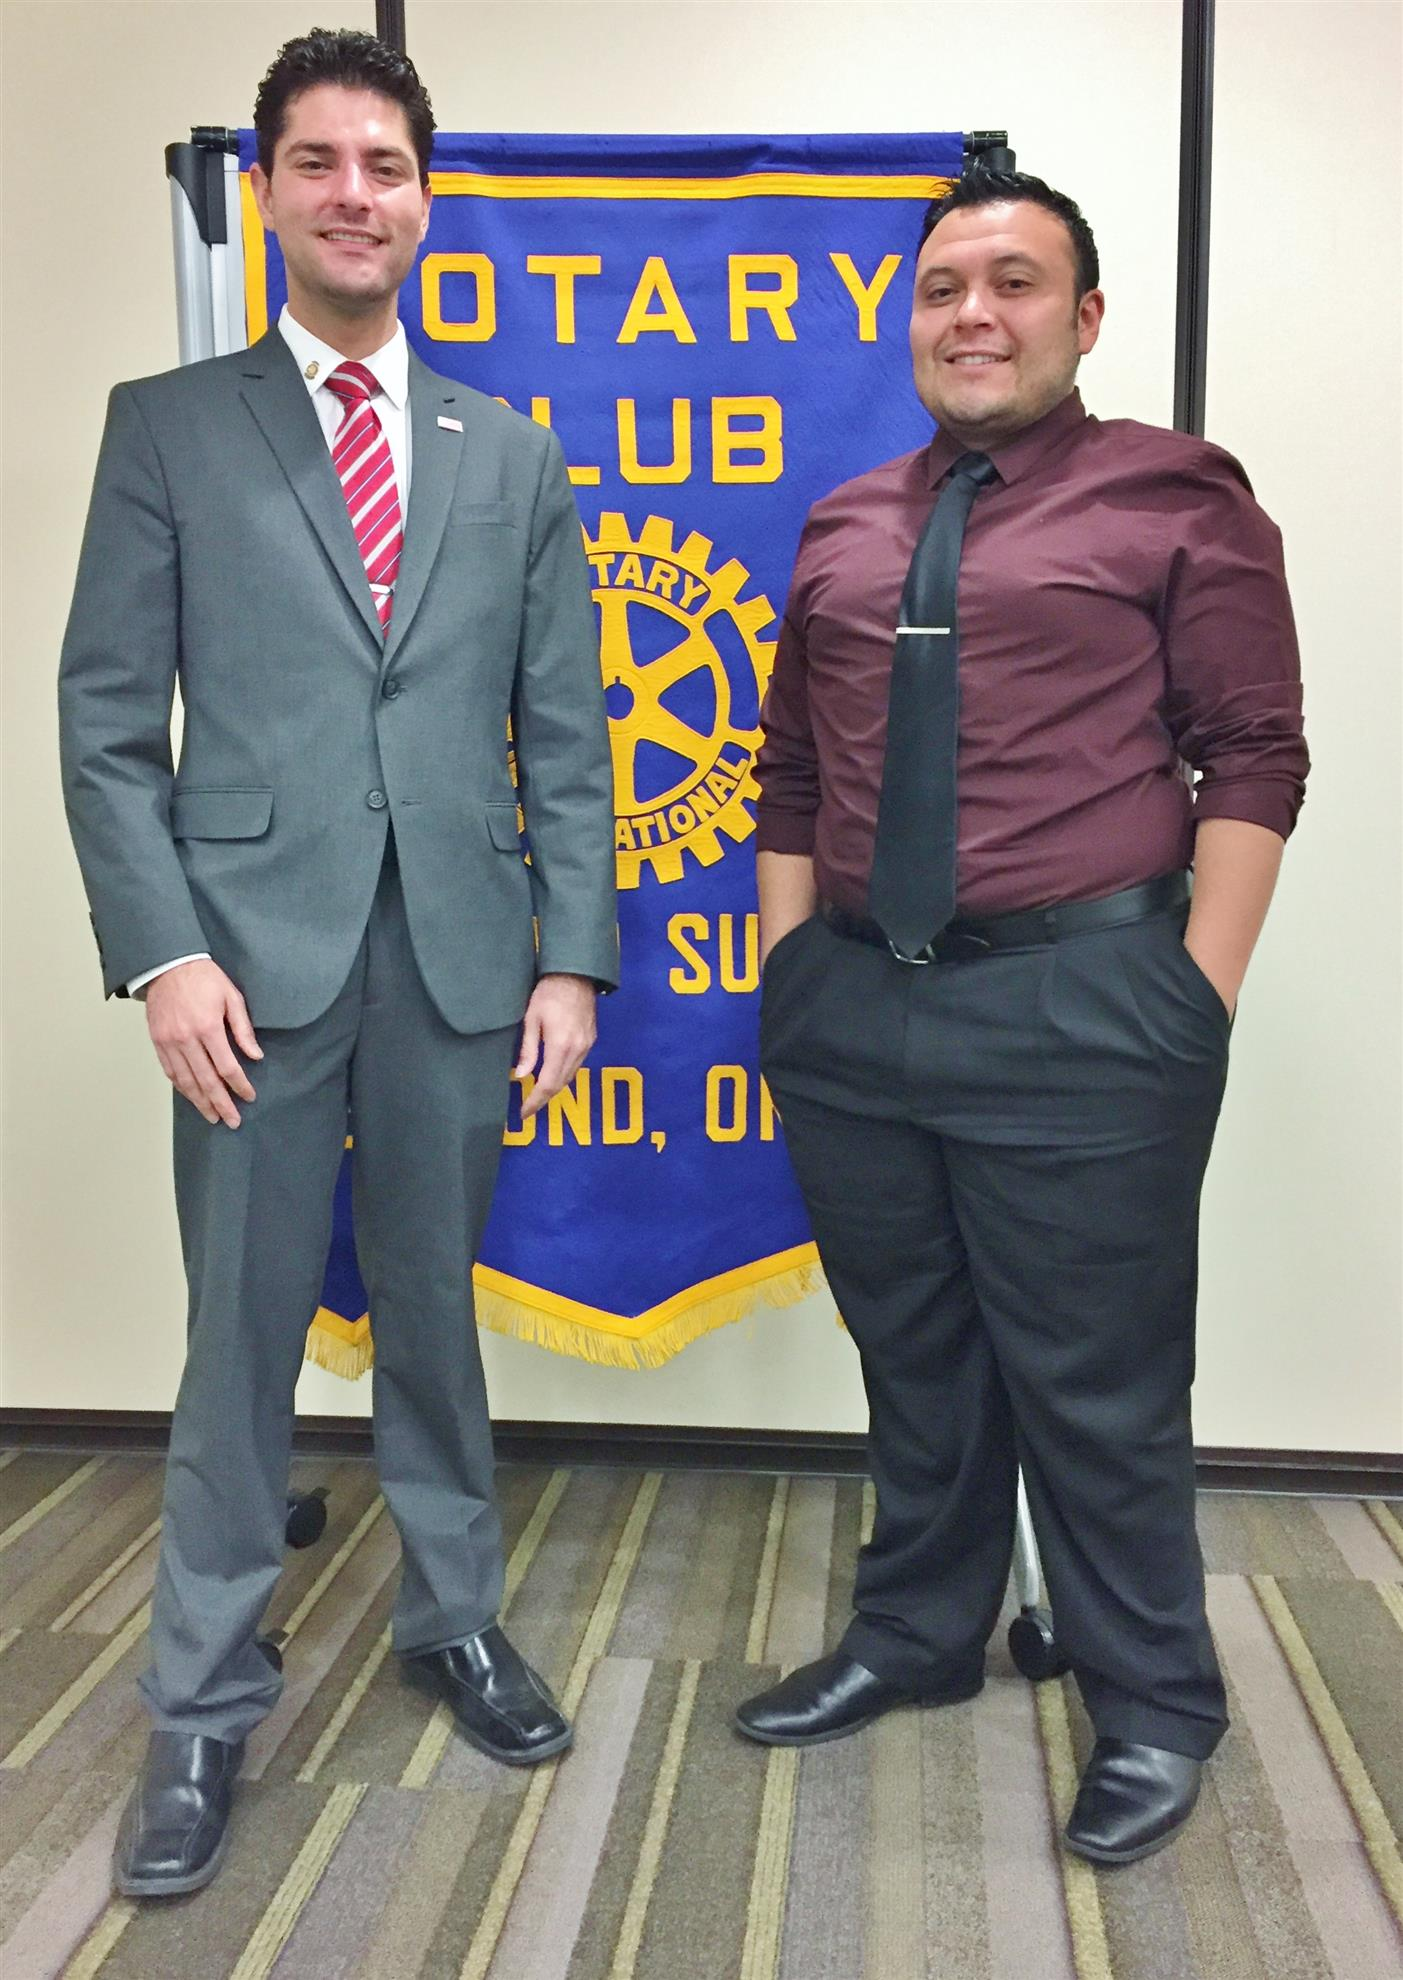 Stories edmond summit rotary club 51552 club president koorosh zahrai left introduced enrique ruiz with altered concepts media as the guest speaker at the october 10th meeting fandeluxe Image collections